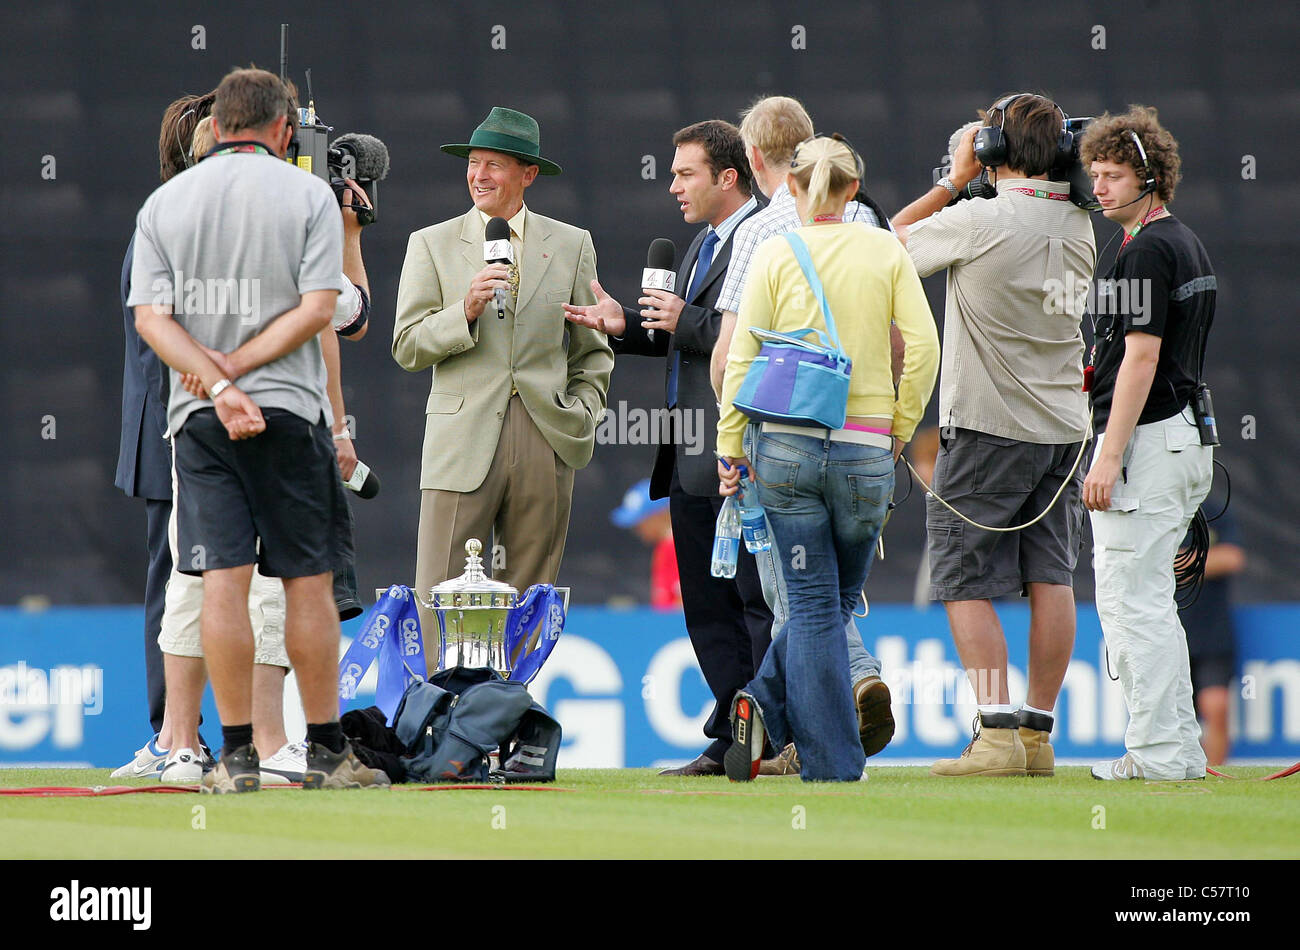 Former England and Yorkshire Cricketer Geoffrey Boycott at the Rose Bowl. Picture by James Boardman. - Stock Image